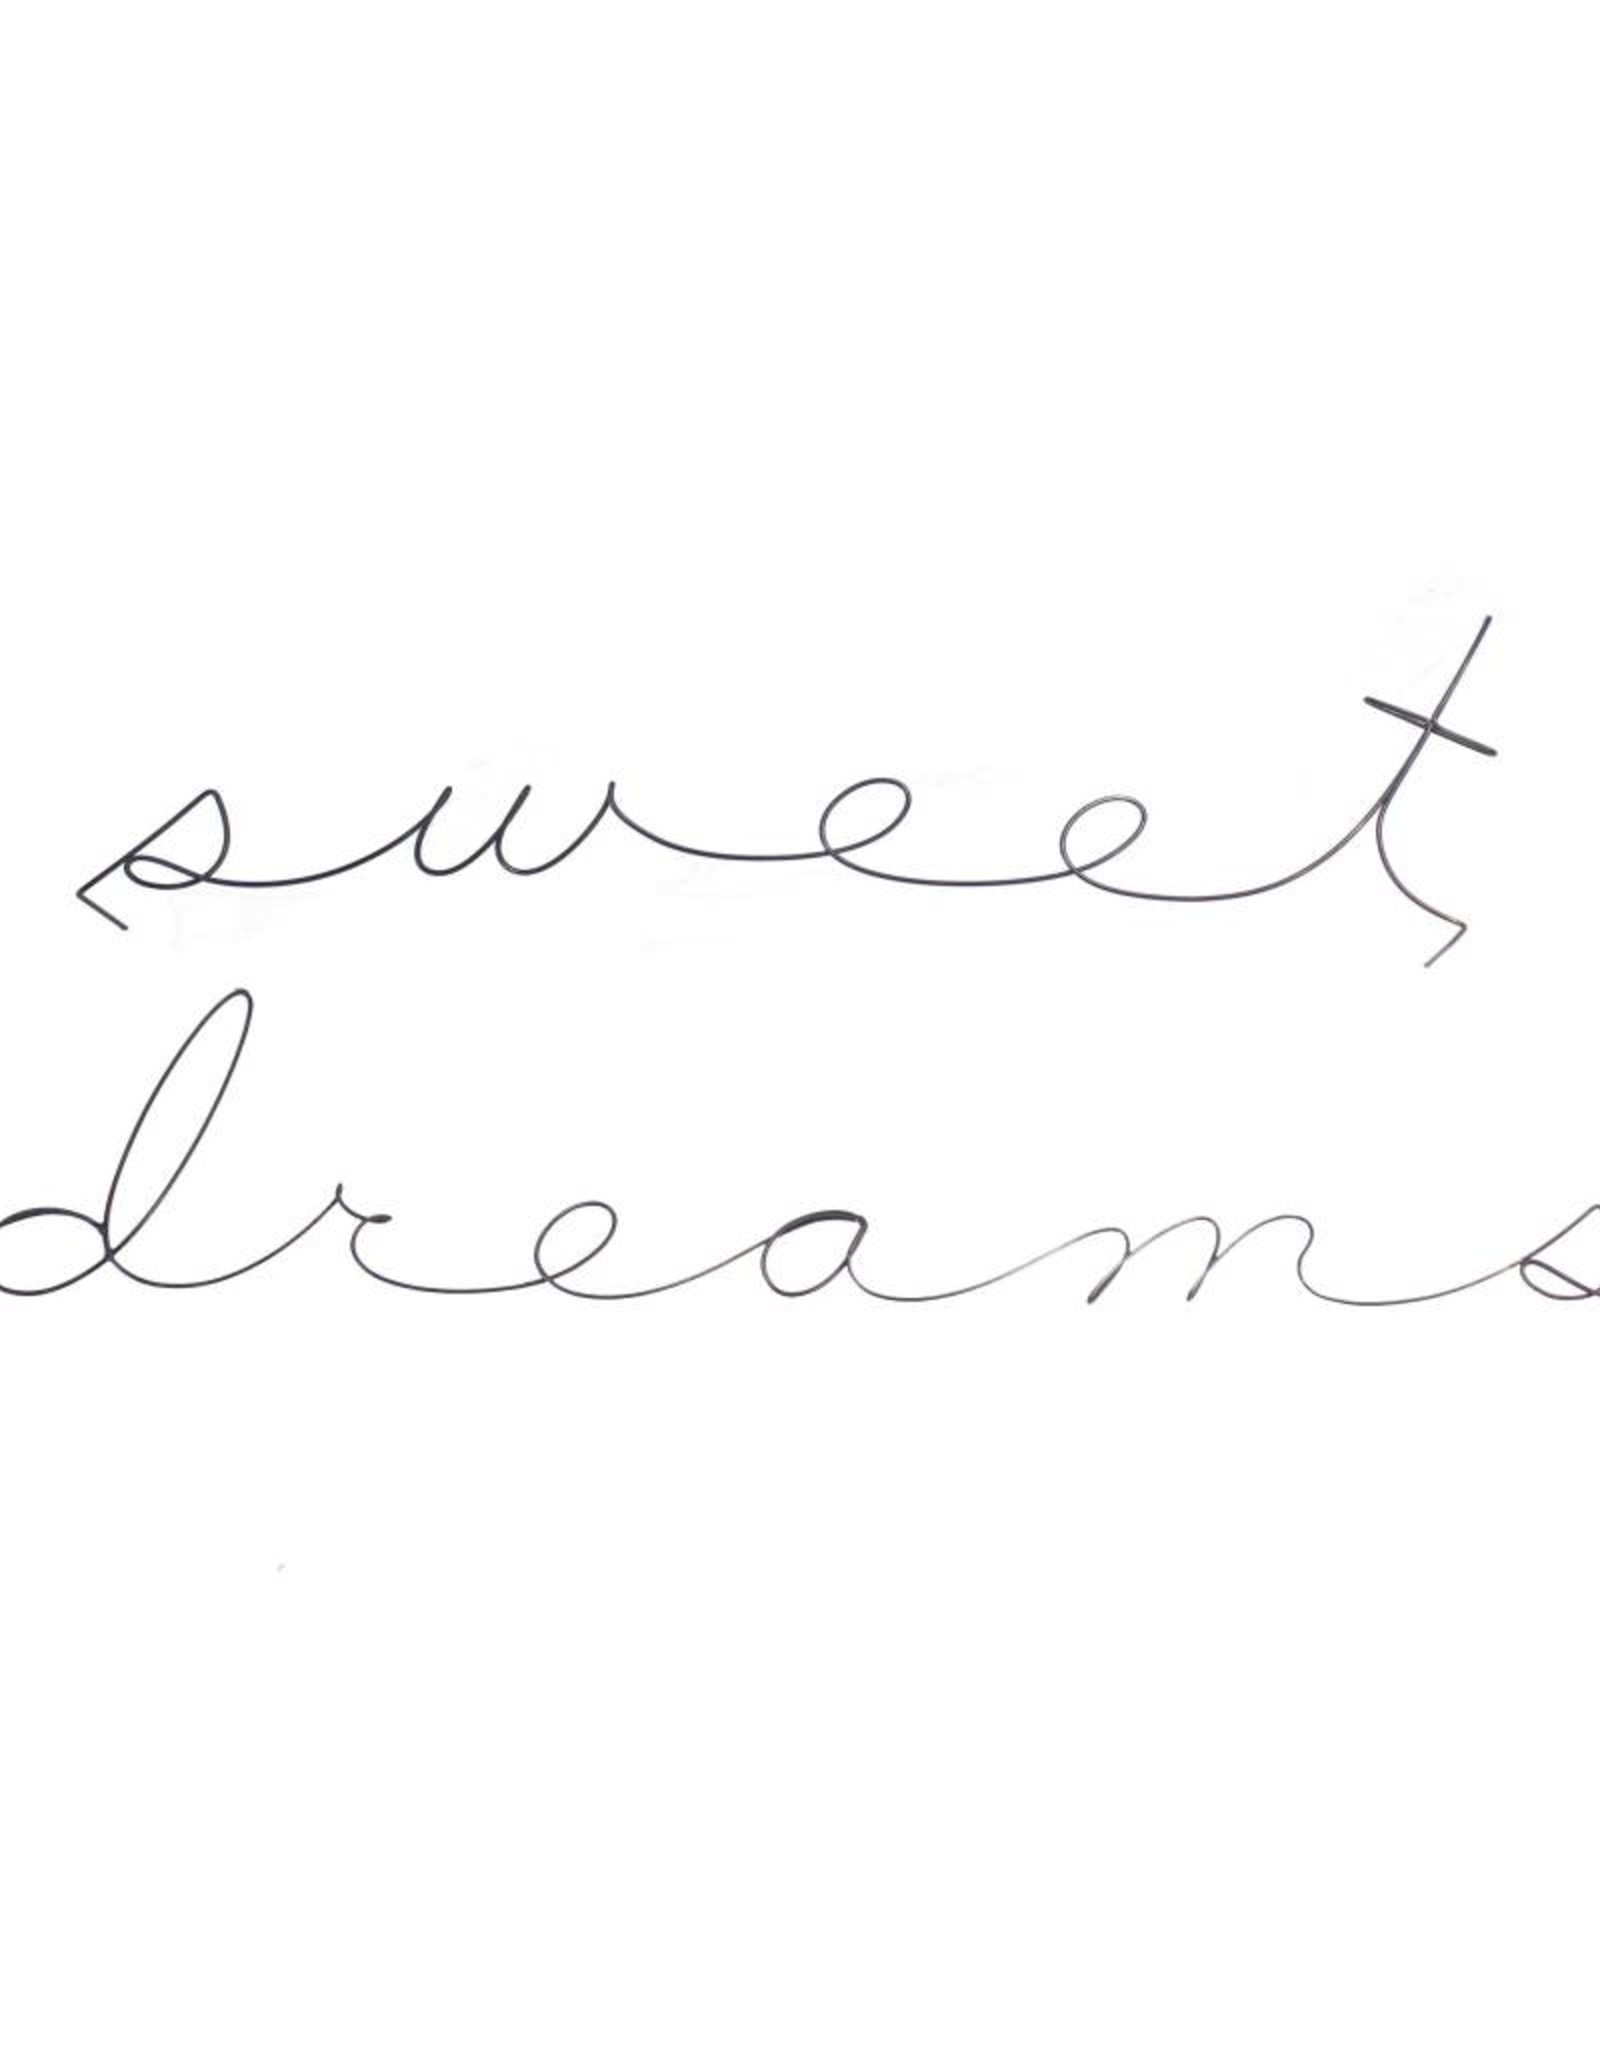 Gauge NYC 'sweet dreams' Wire Word Poetic